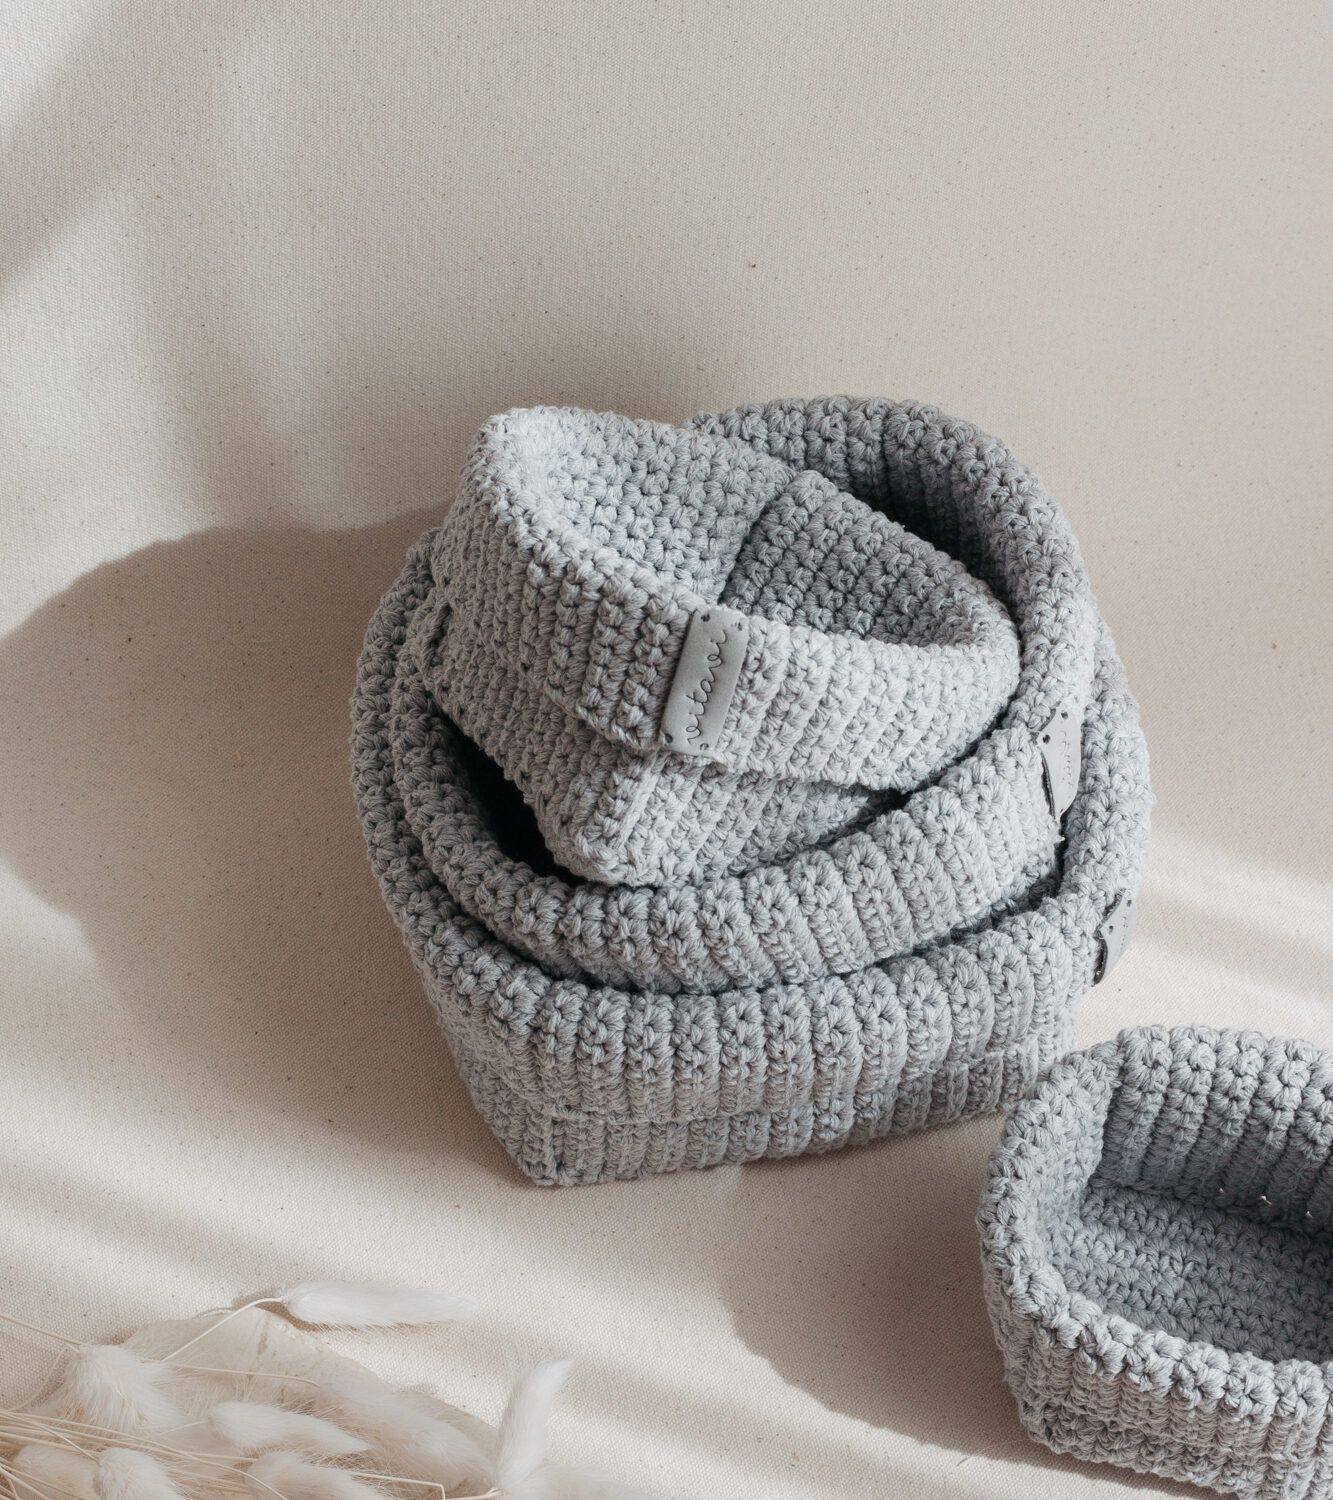 Set of 4 Crochet Baskets - Grey